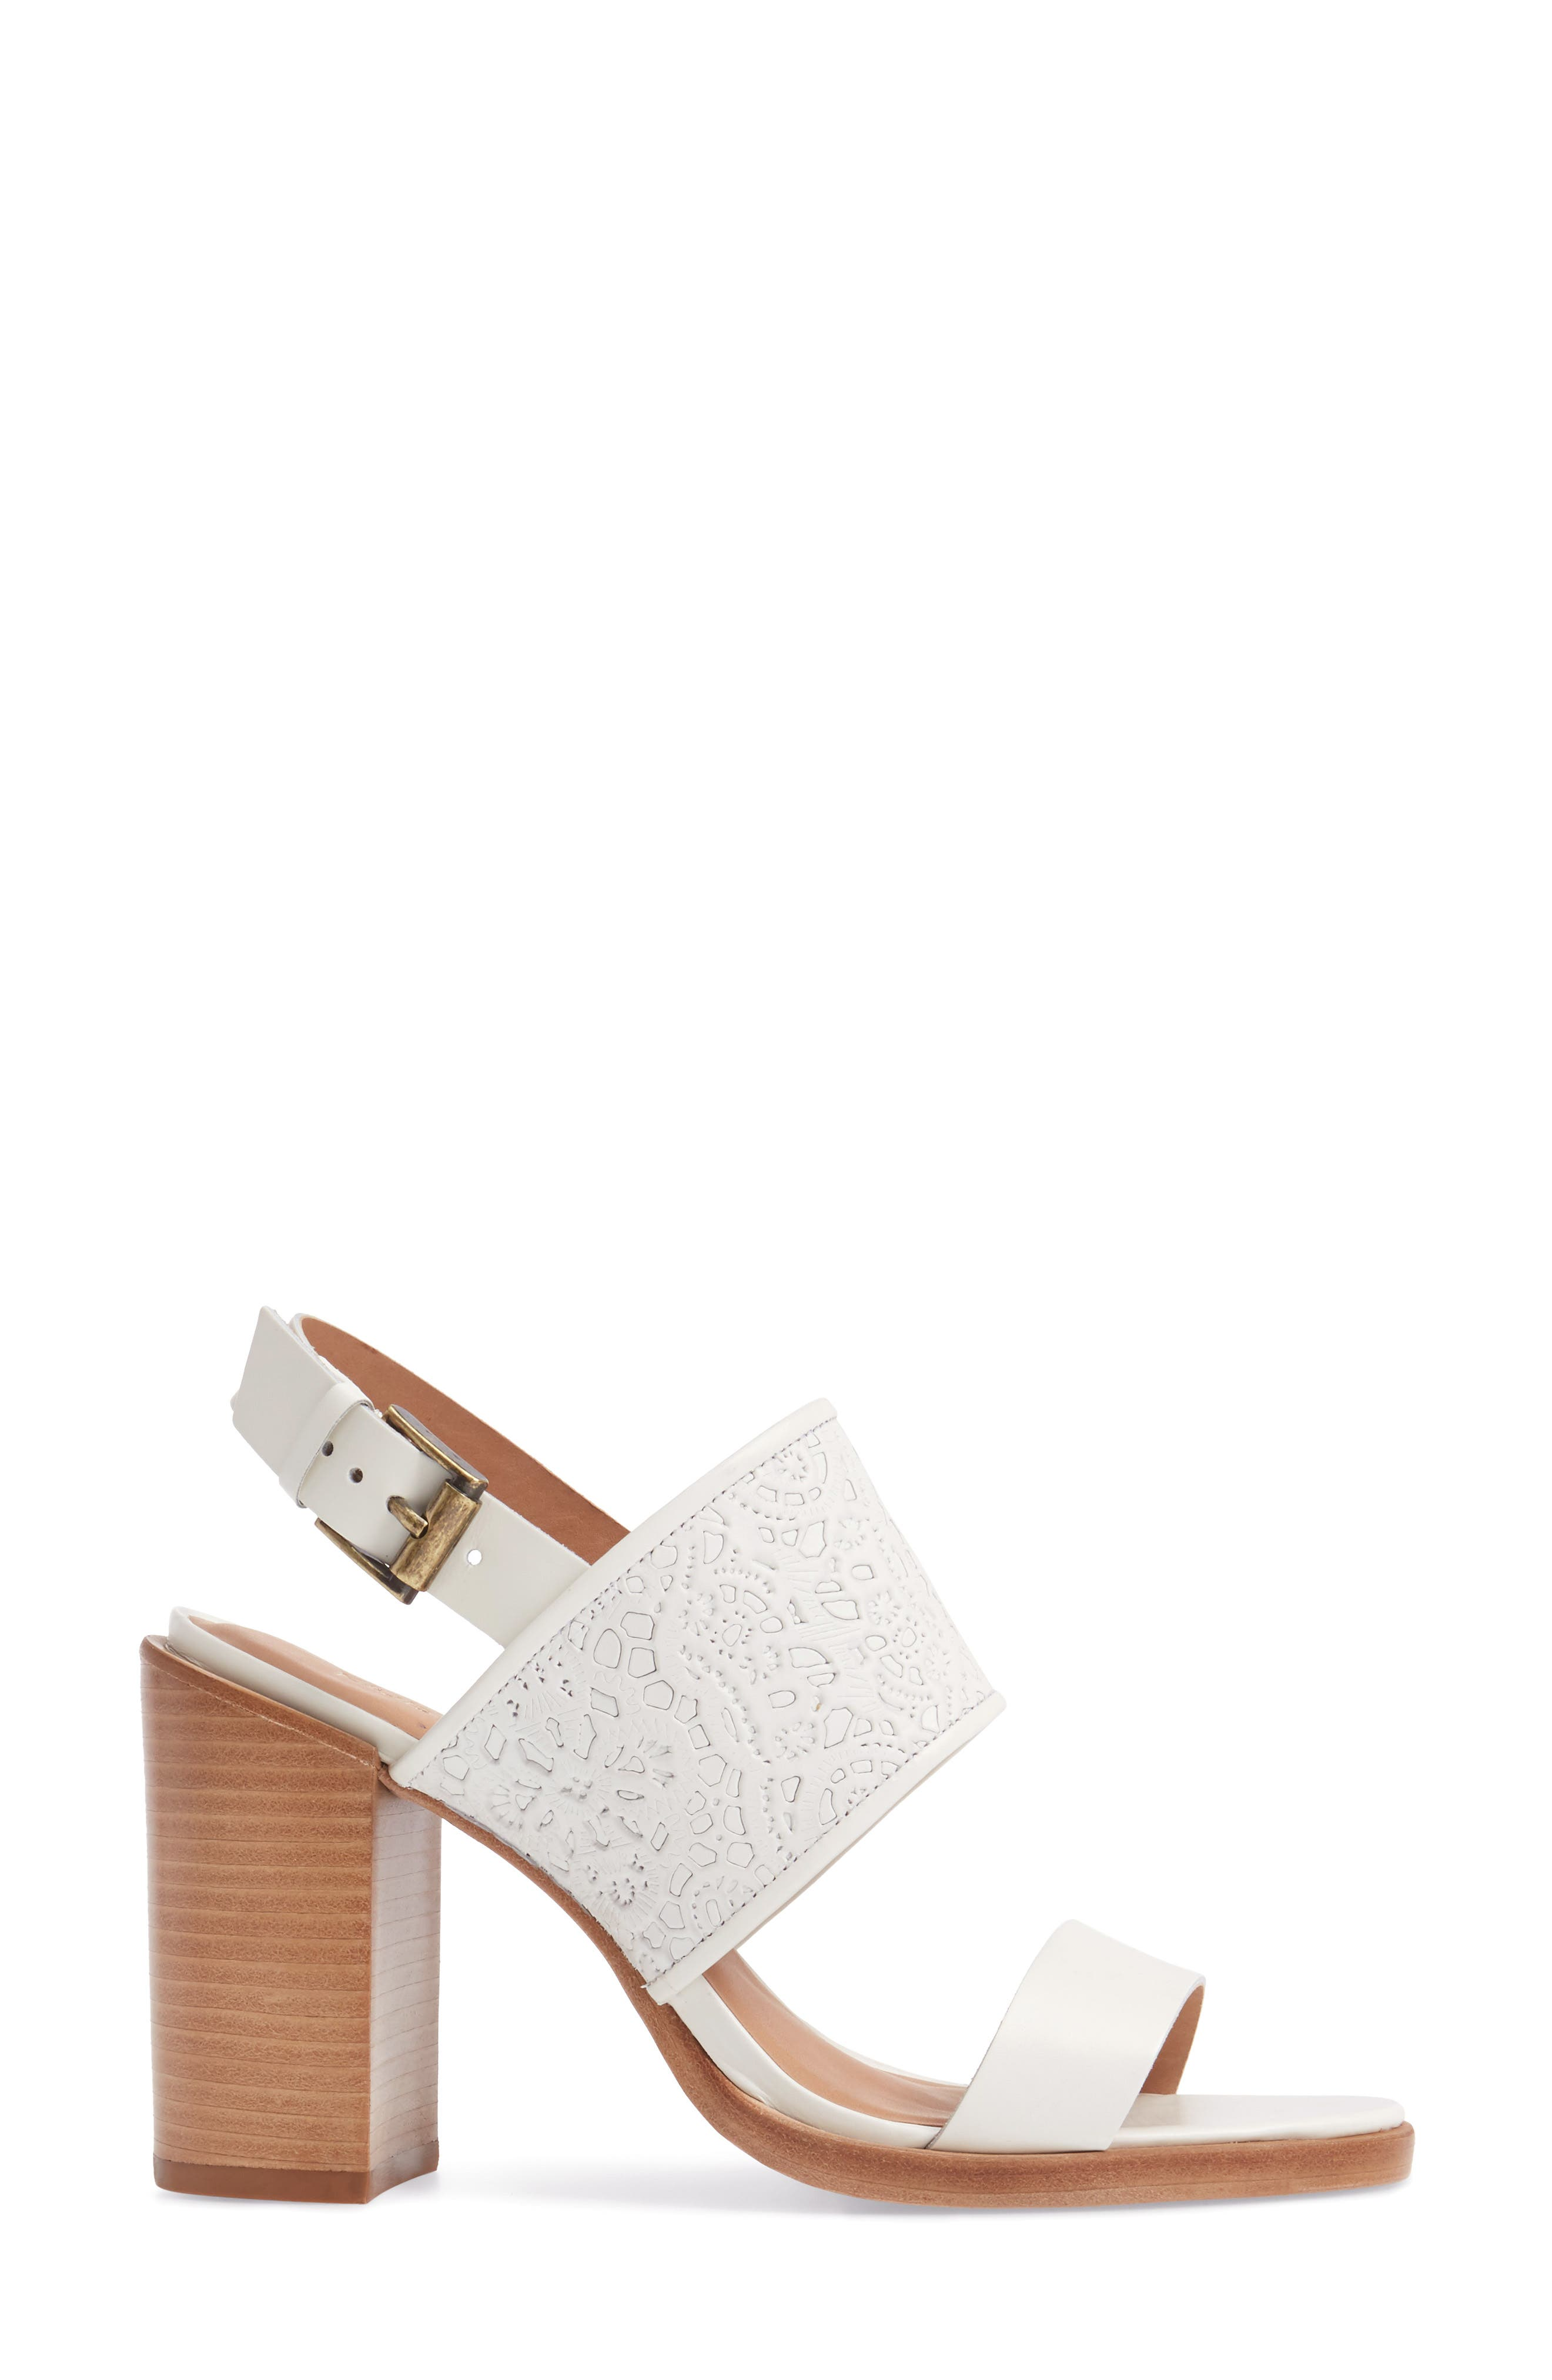 Alternate Image 3  - Klub Nico Tilda Sandal (Women)